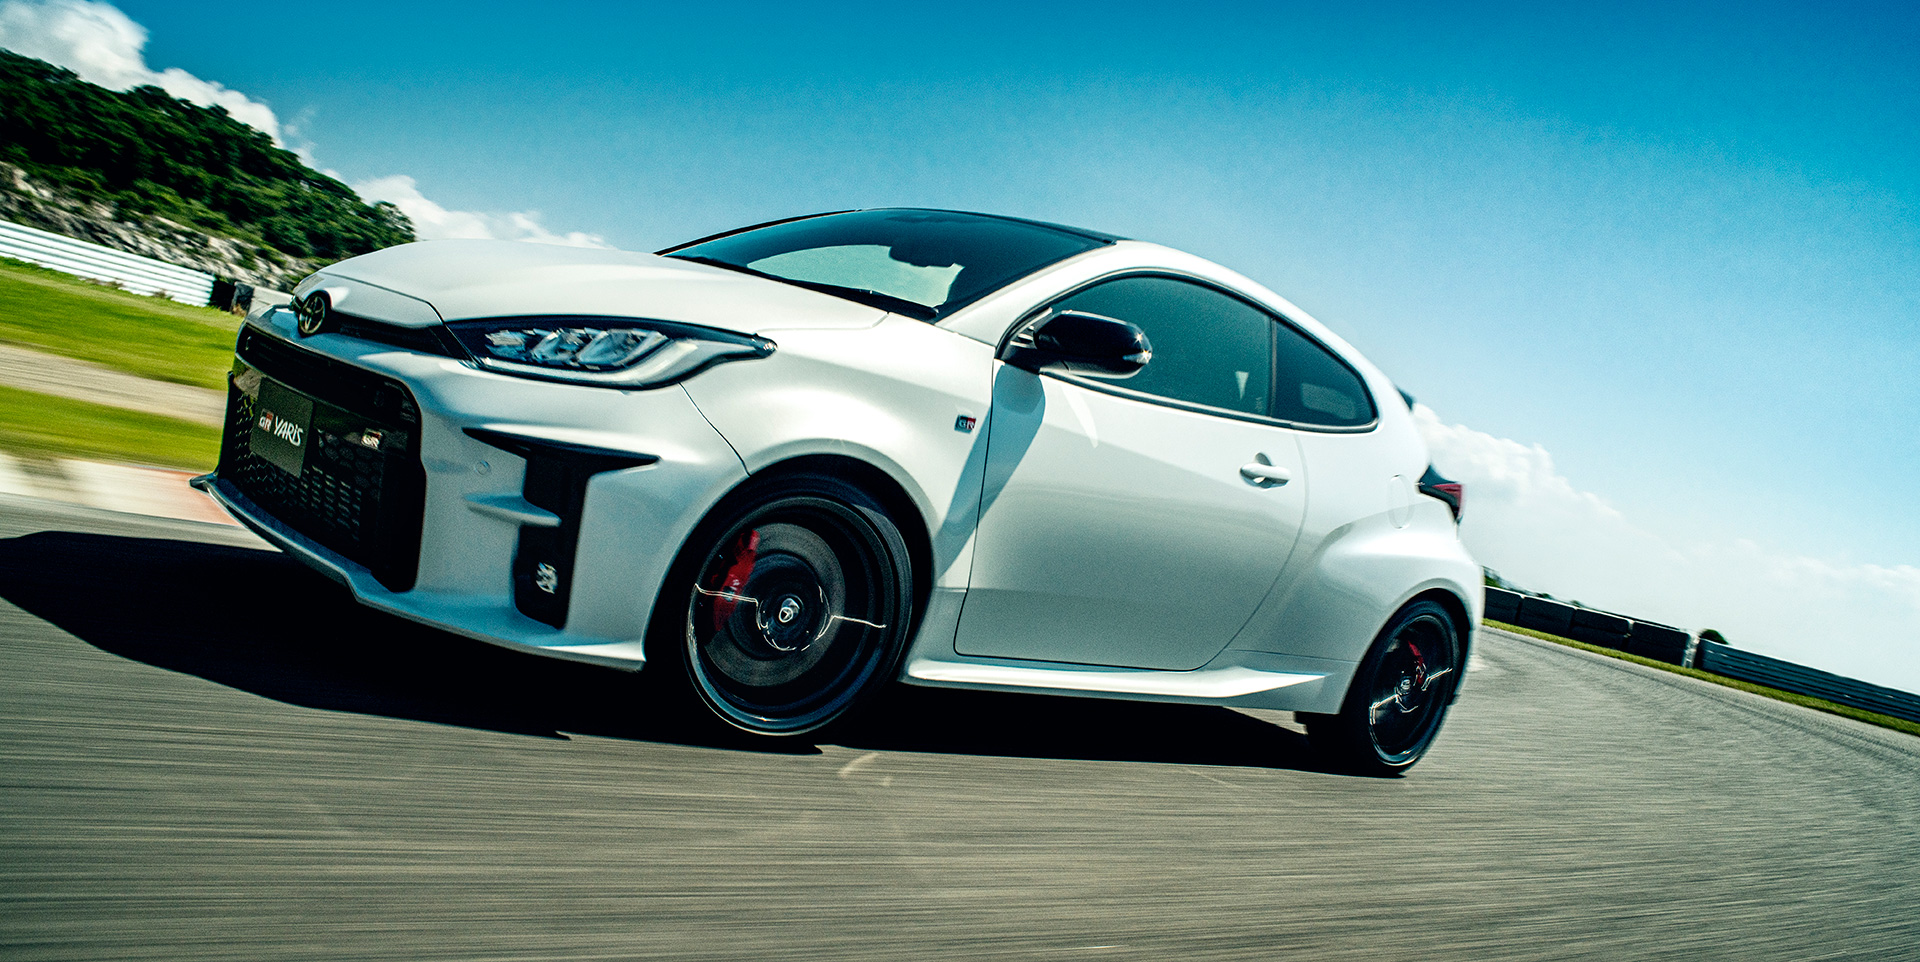 Toyota Celebrates Launch of New GR Yaris in Japan with Virtual EventGR YARIS ONLINE FES Event to be Held September 16 - Image 5